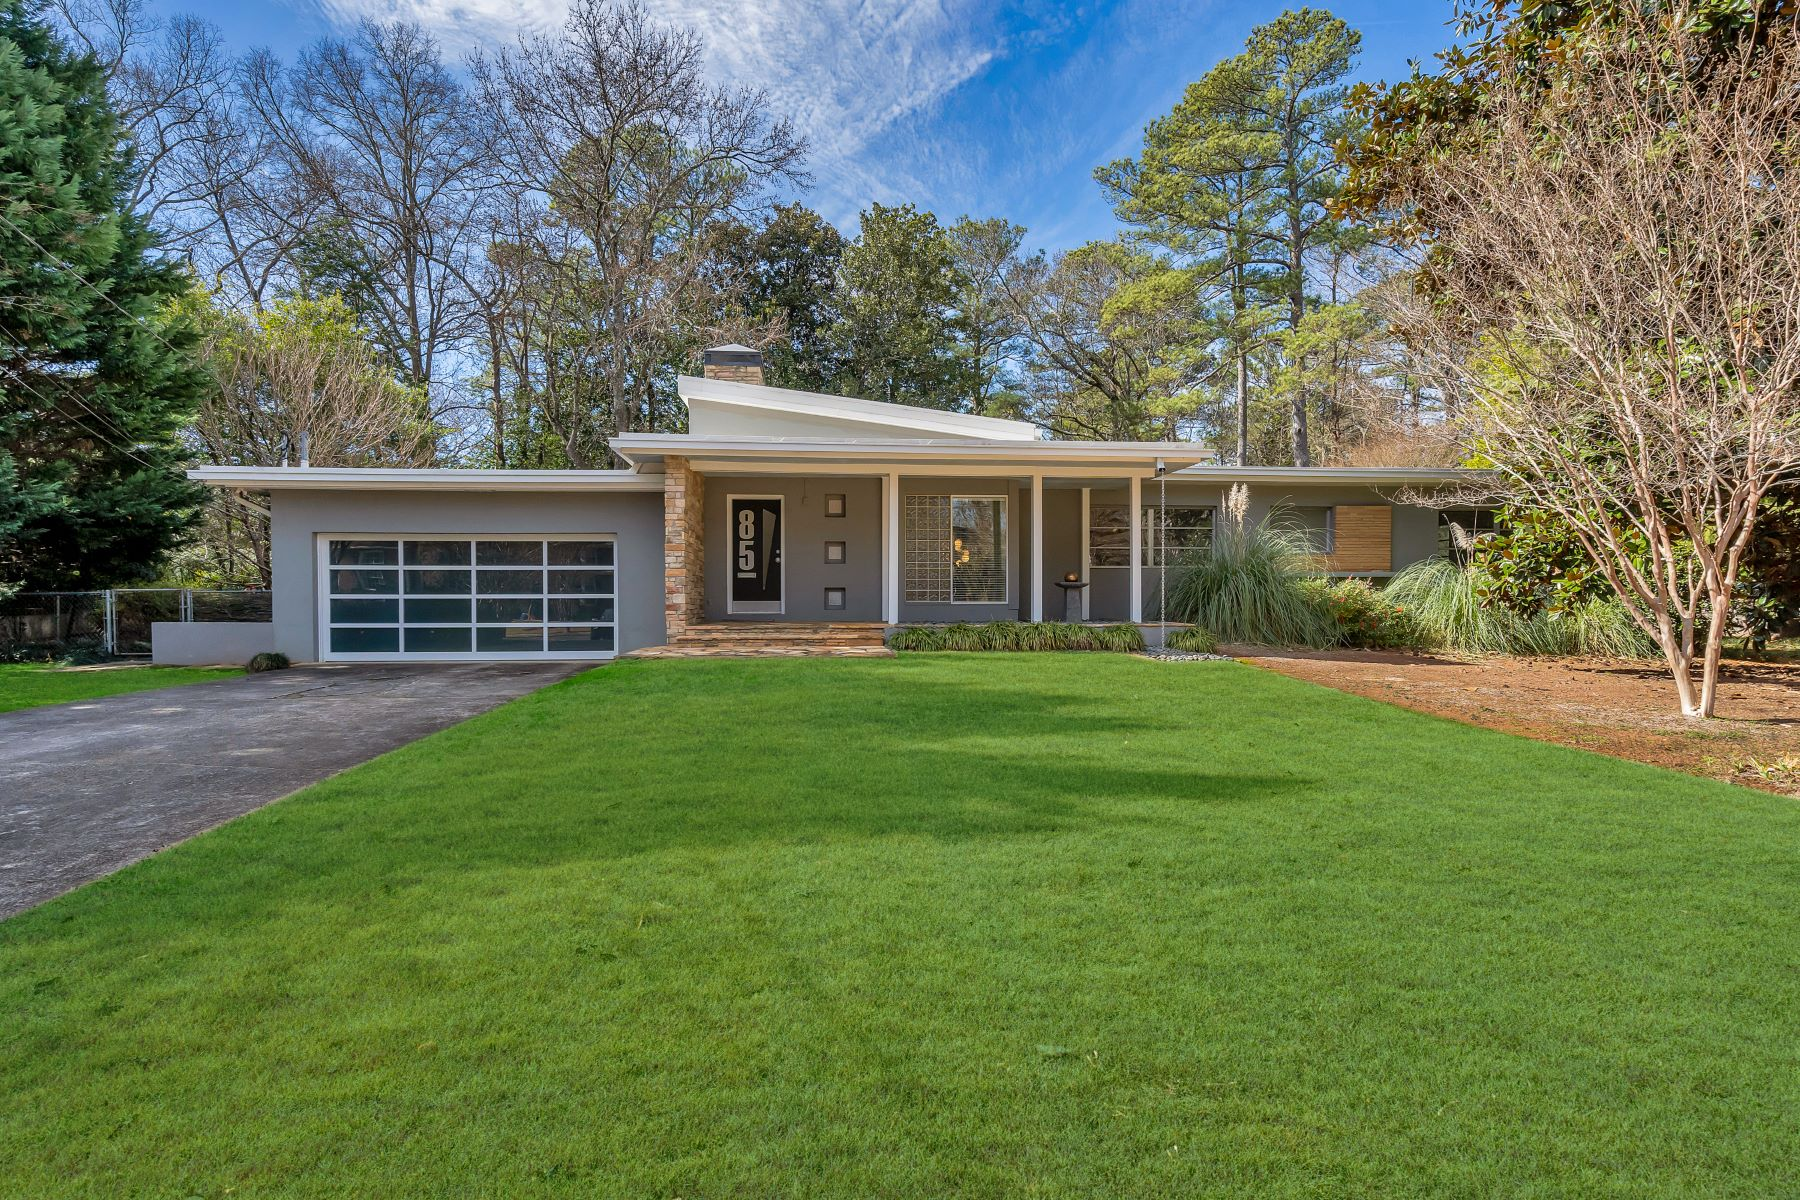 Single Family Homes for Sale at Mid-Century Modern Masterpiece With Guest Cottage 85 Clarendon Avenue Avondale Estates, Georgia 30002 United States